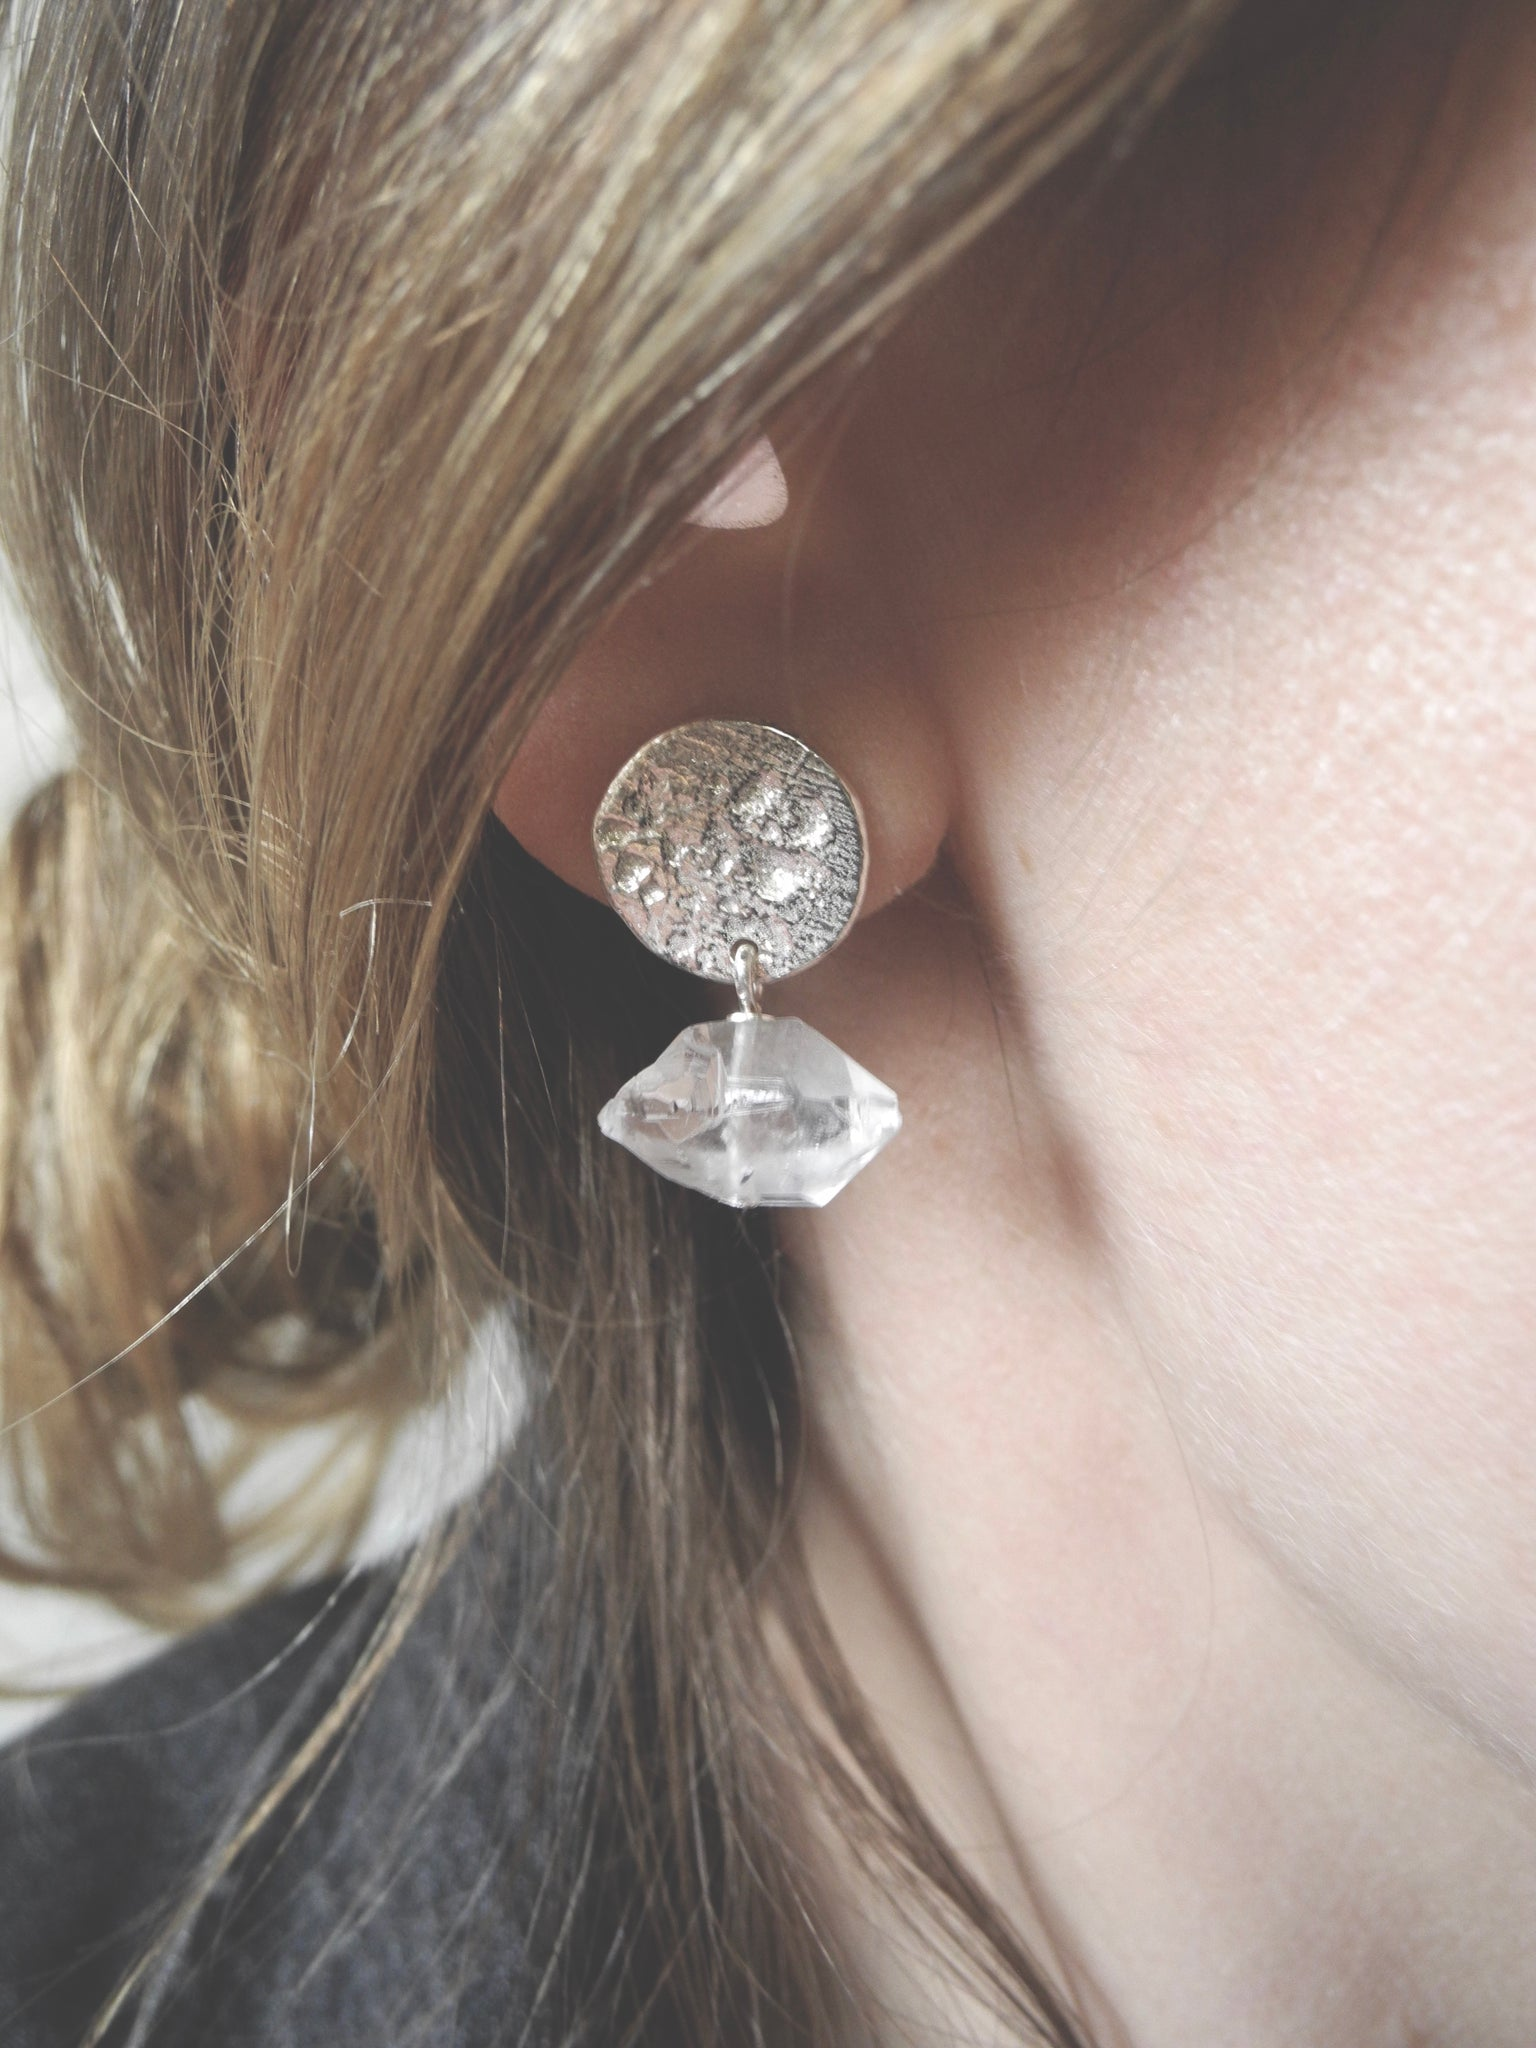 quartz and moons earrings